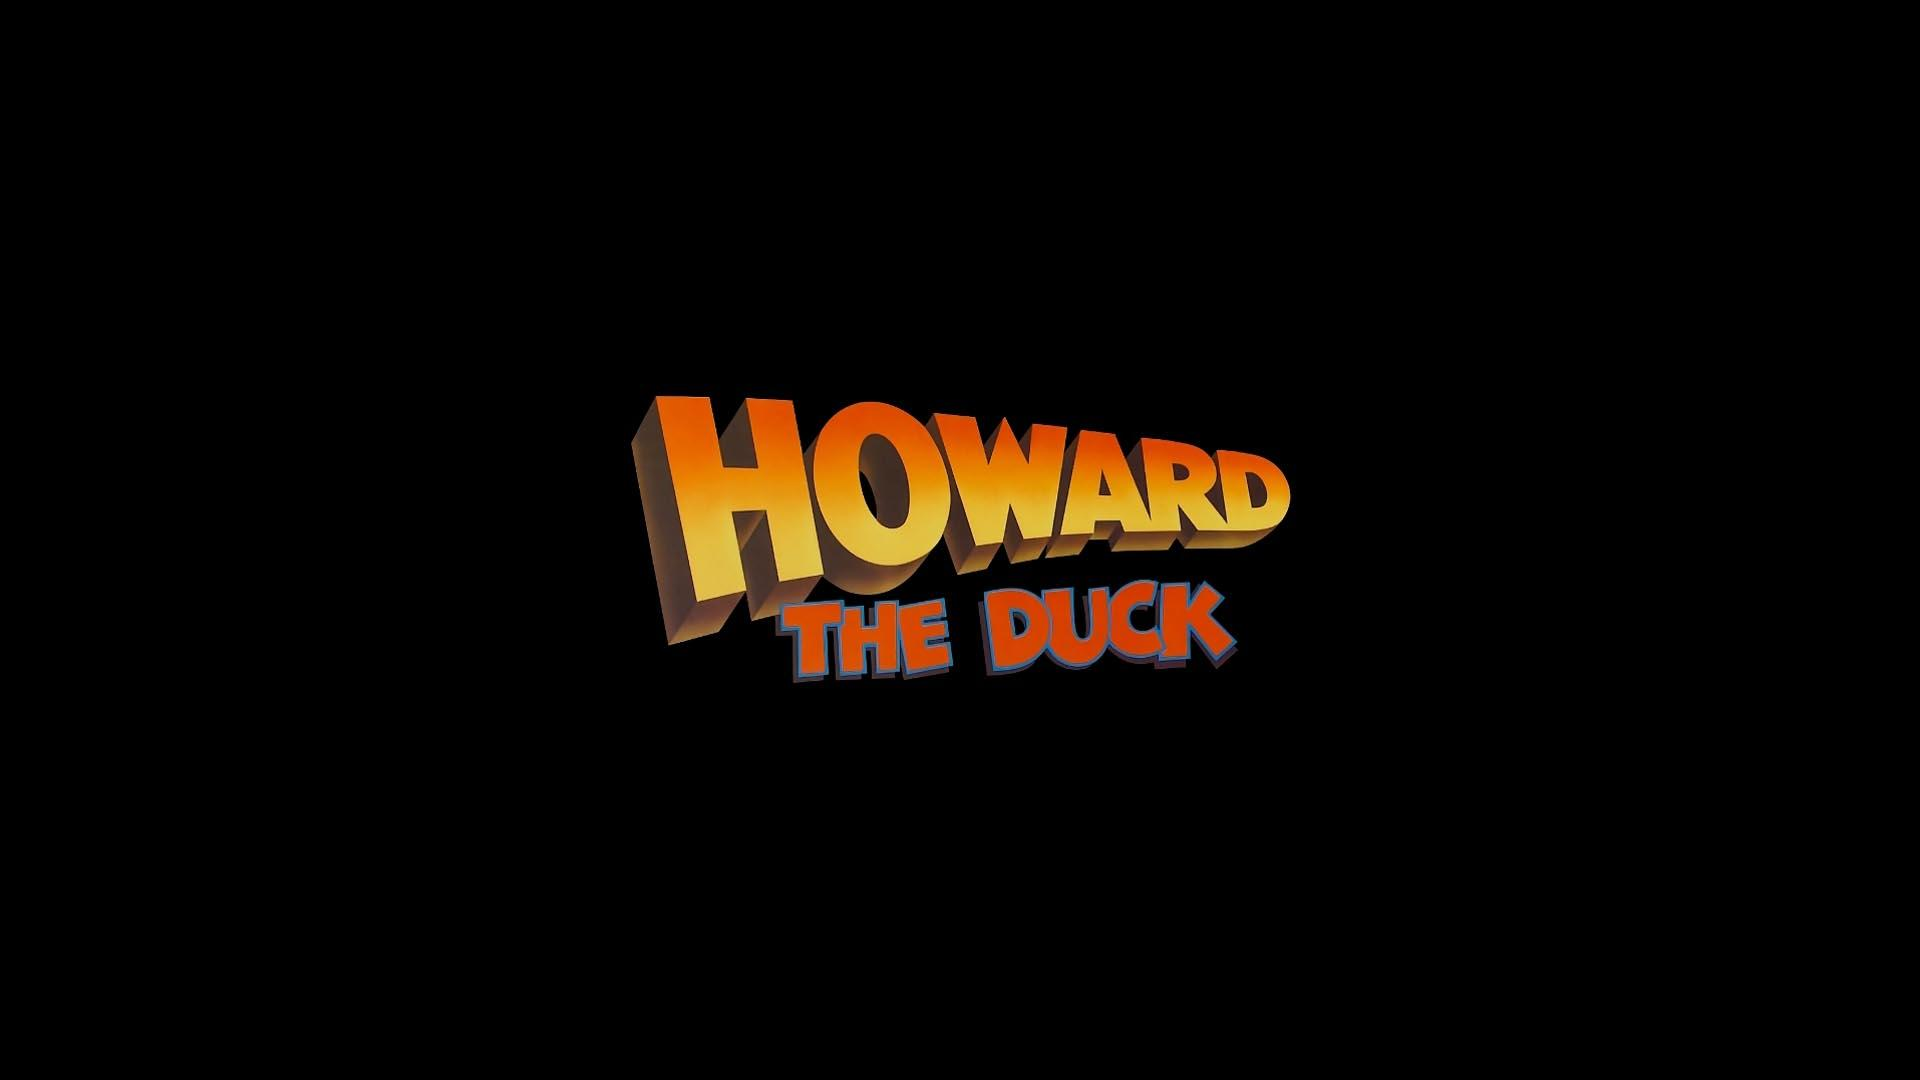 Howard The Duck Wallpapers High Quality Download 1920x1080